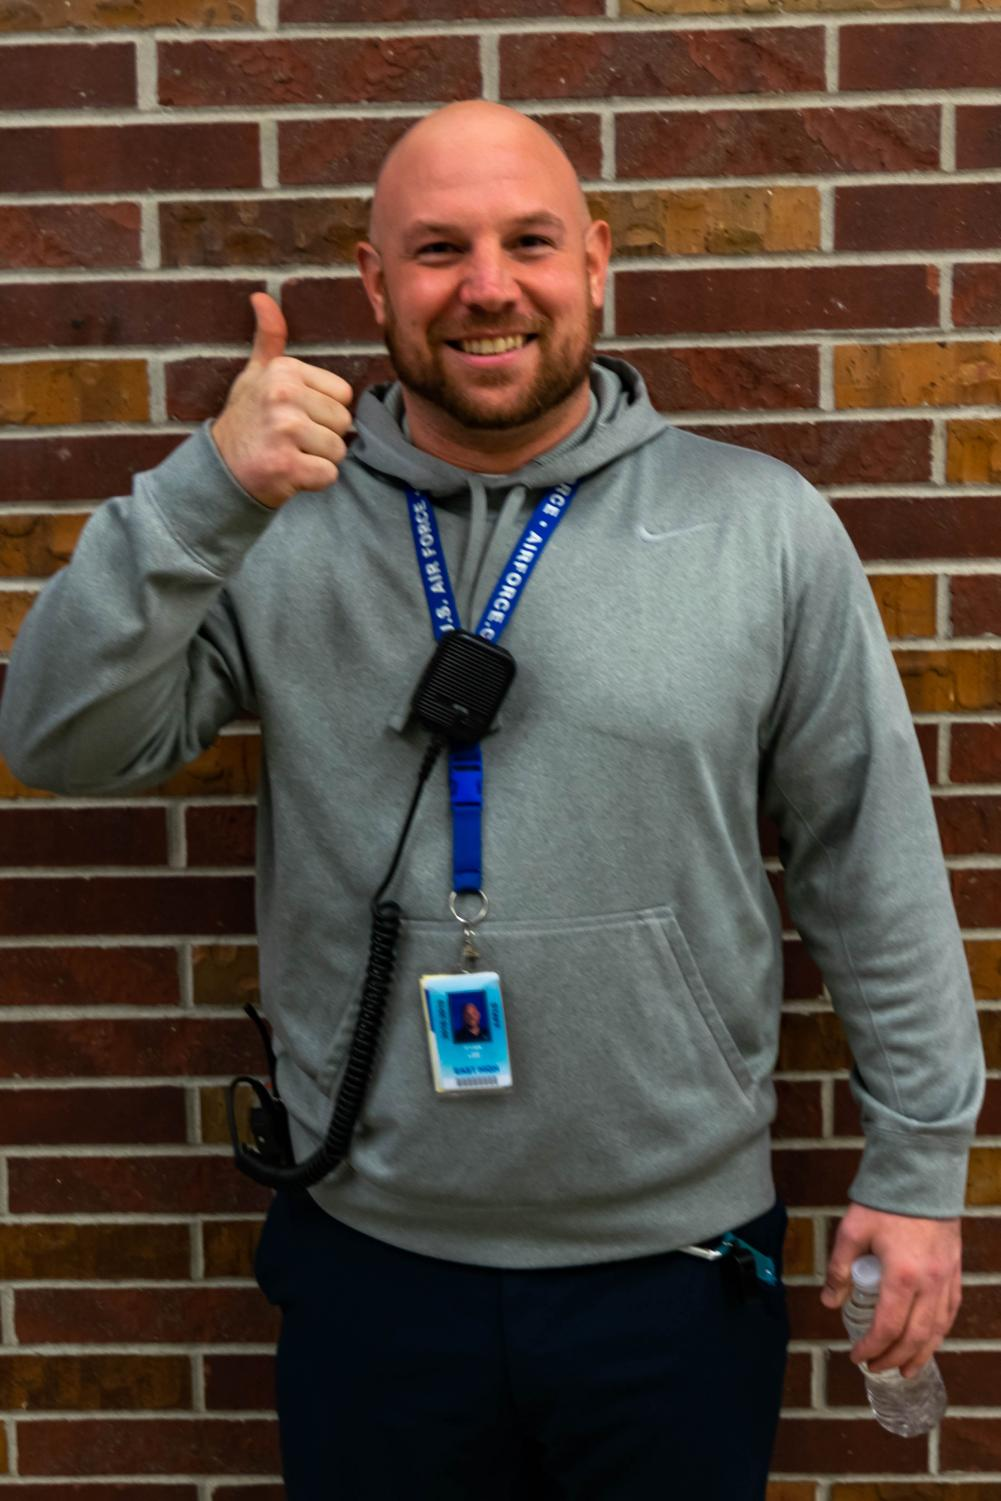 Ryan Lee is one of our four campus supervisors. He has a degree in nutrition, and also works part-time at the Hy-Vee fuel station.